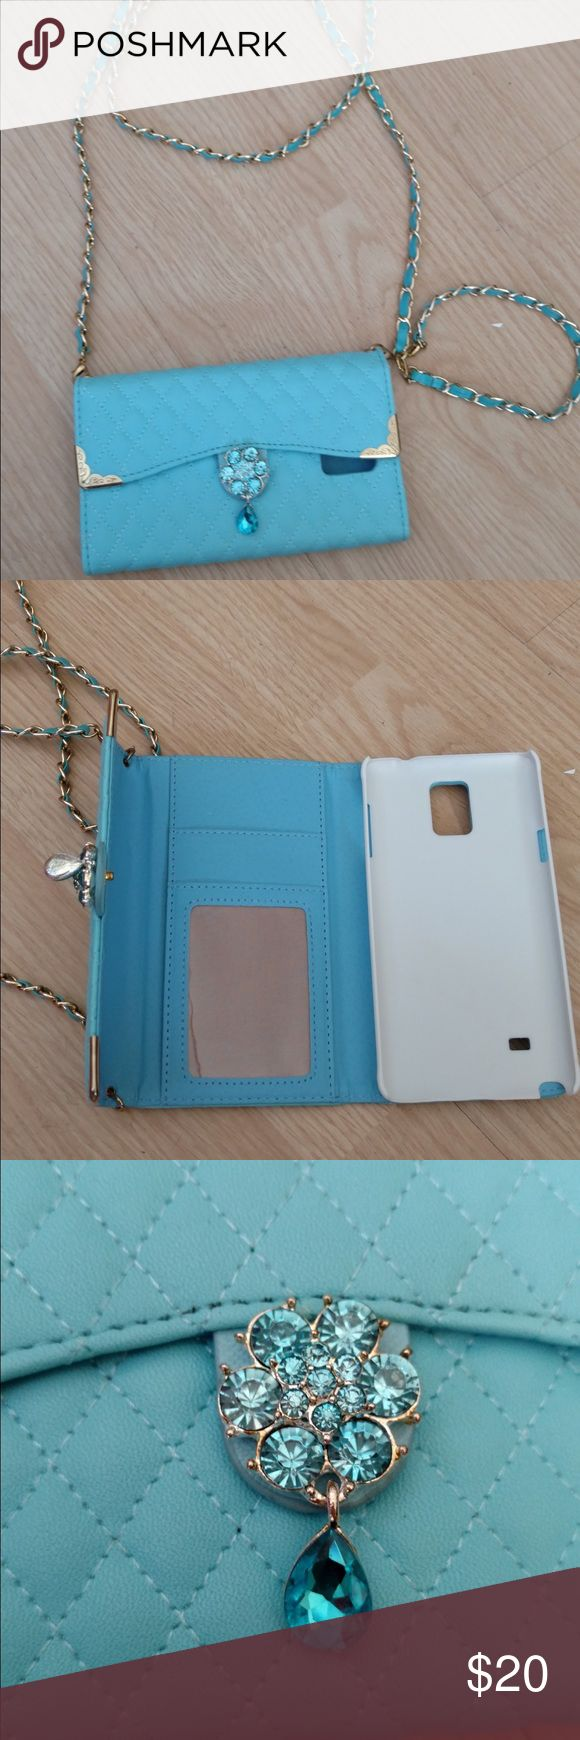 Phone case. Wallet phone case for a Samsung Galaxy Note 4.  Brand new never used.  I cut tags off, but never put phone in it.  Ended up switching phones.  Color is a turquoise. Accessories Phone Cases